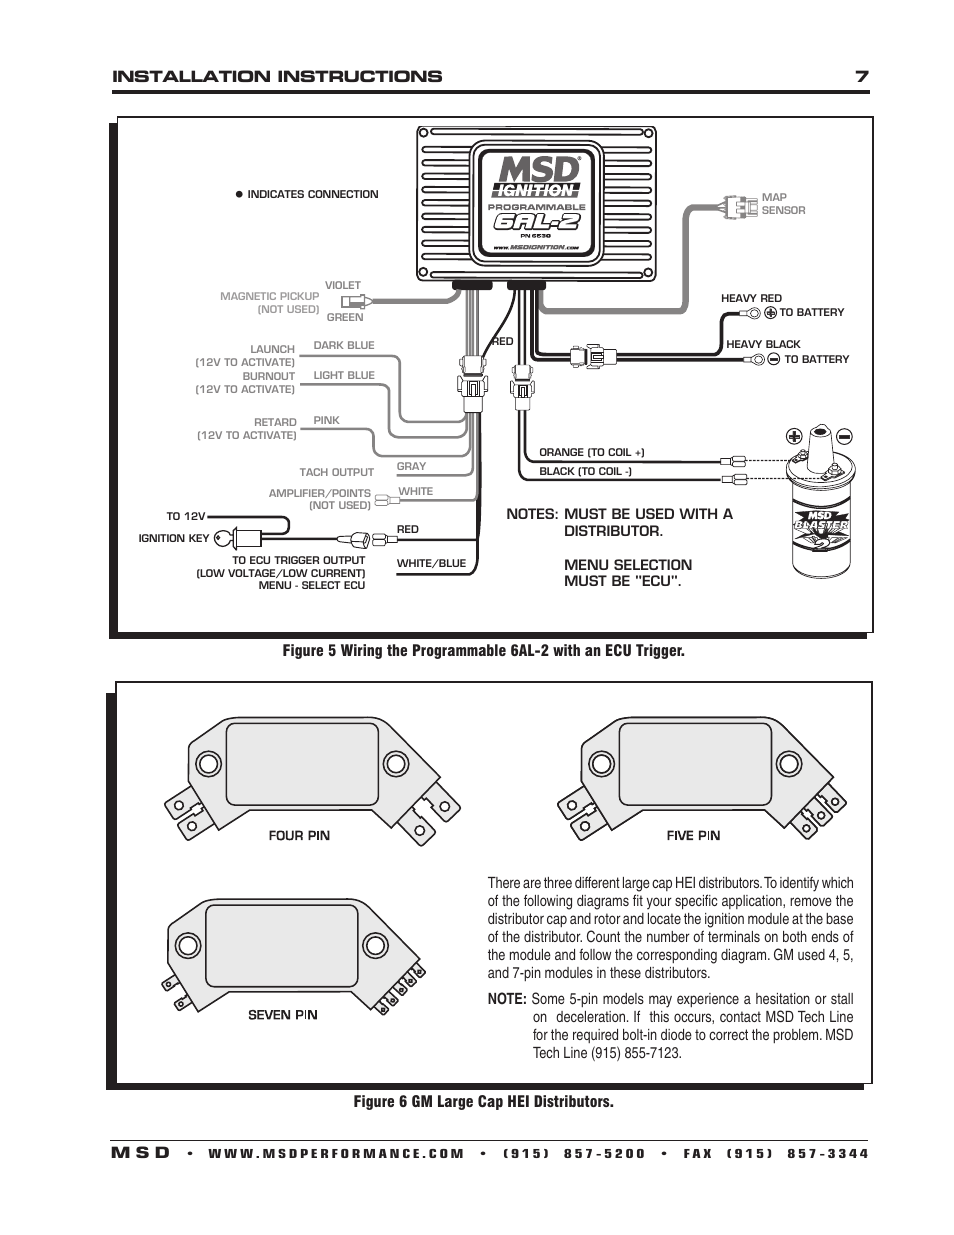 msd 6530 digital programmable 6al 2 installation page7?resize\\\\\\\=665%2C861 remarkable msd 6a wiring diagram chevy hei photos wiring hei wiring diagram at fashall.co